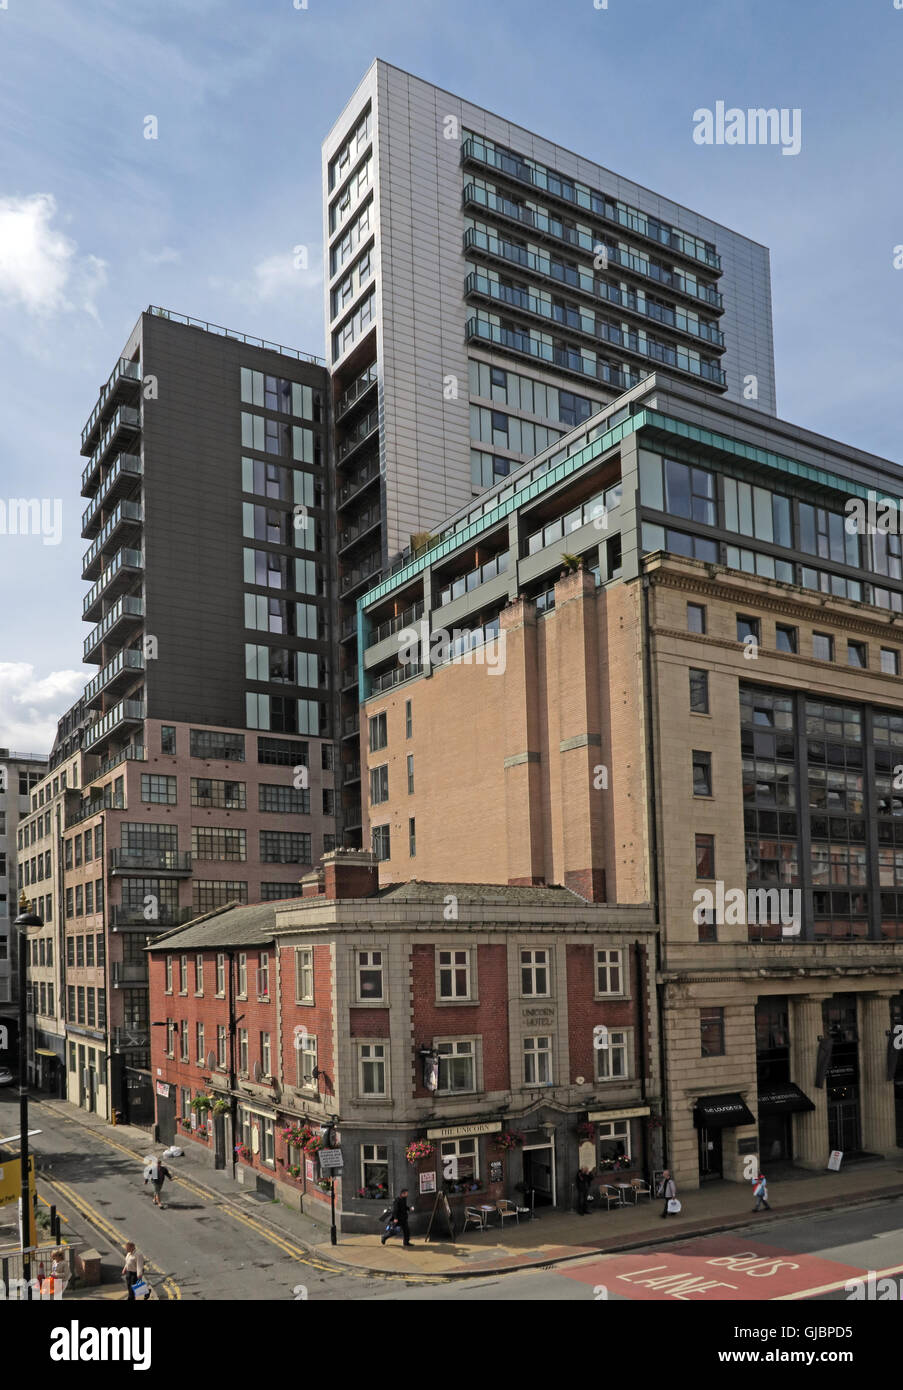 The Unicorn Hotel, 26 Church Street, Manchester, North West England,M4 1PW - Stock Image